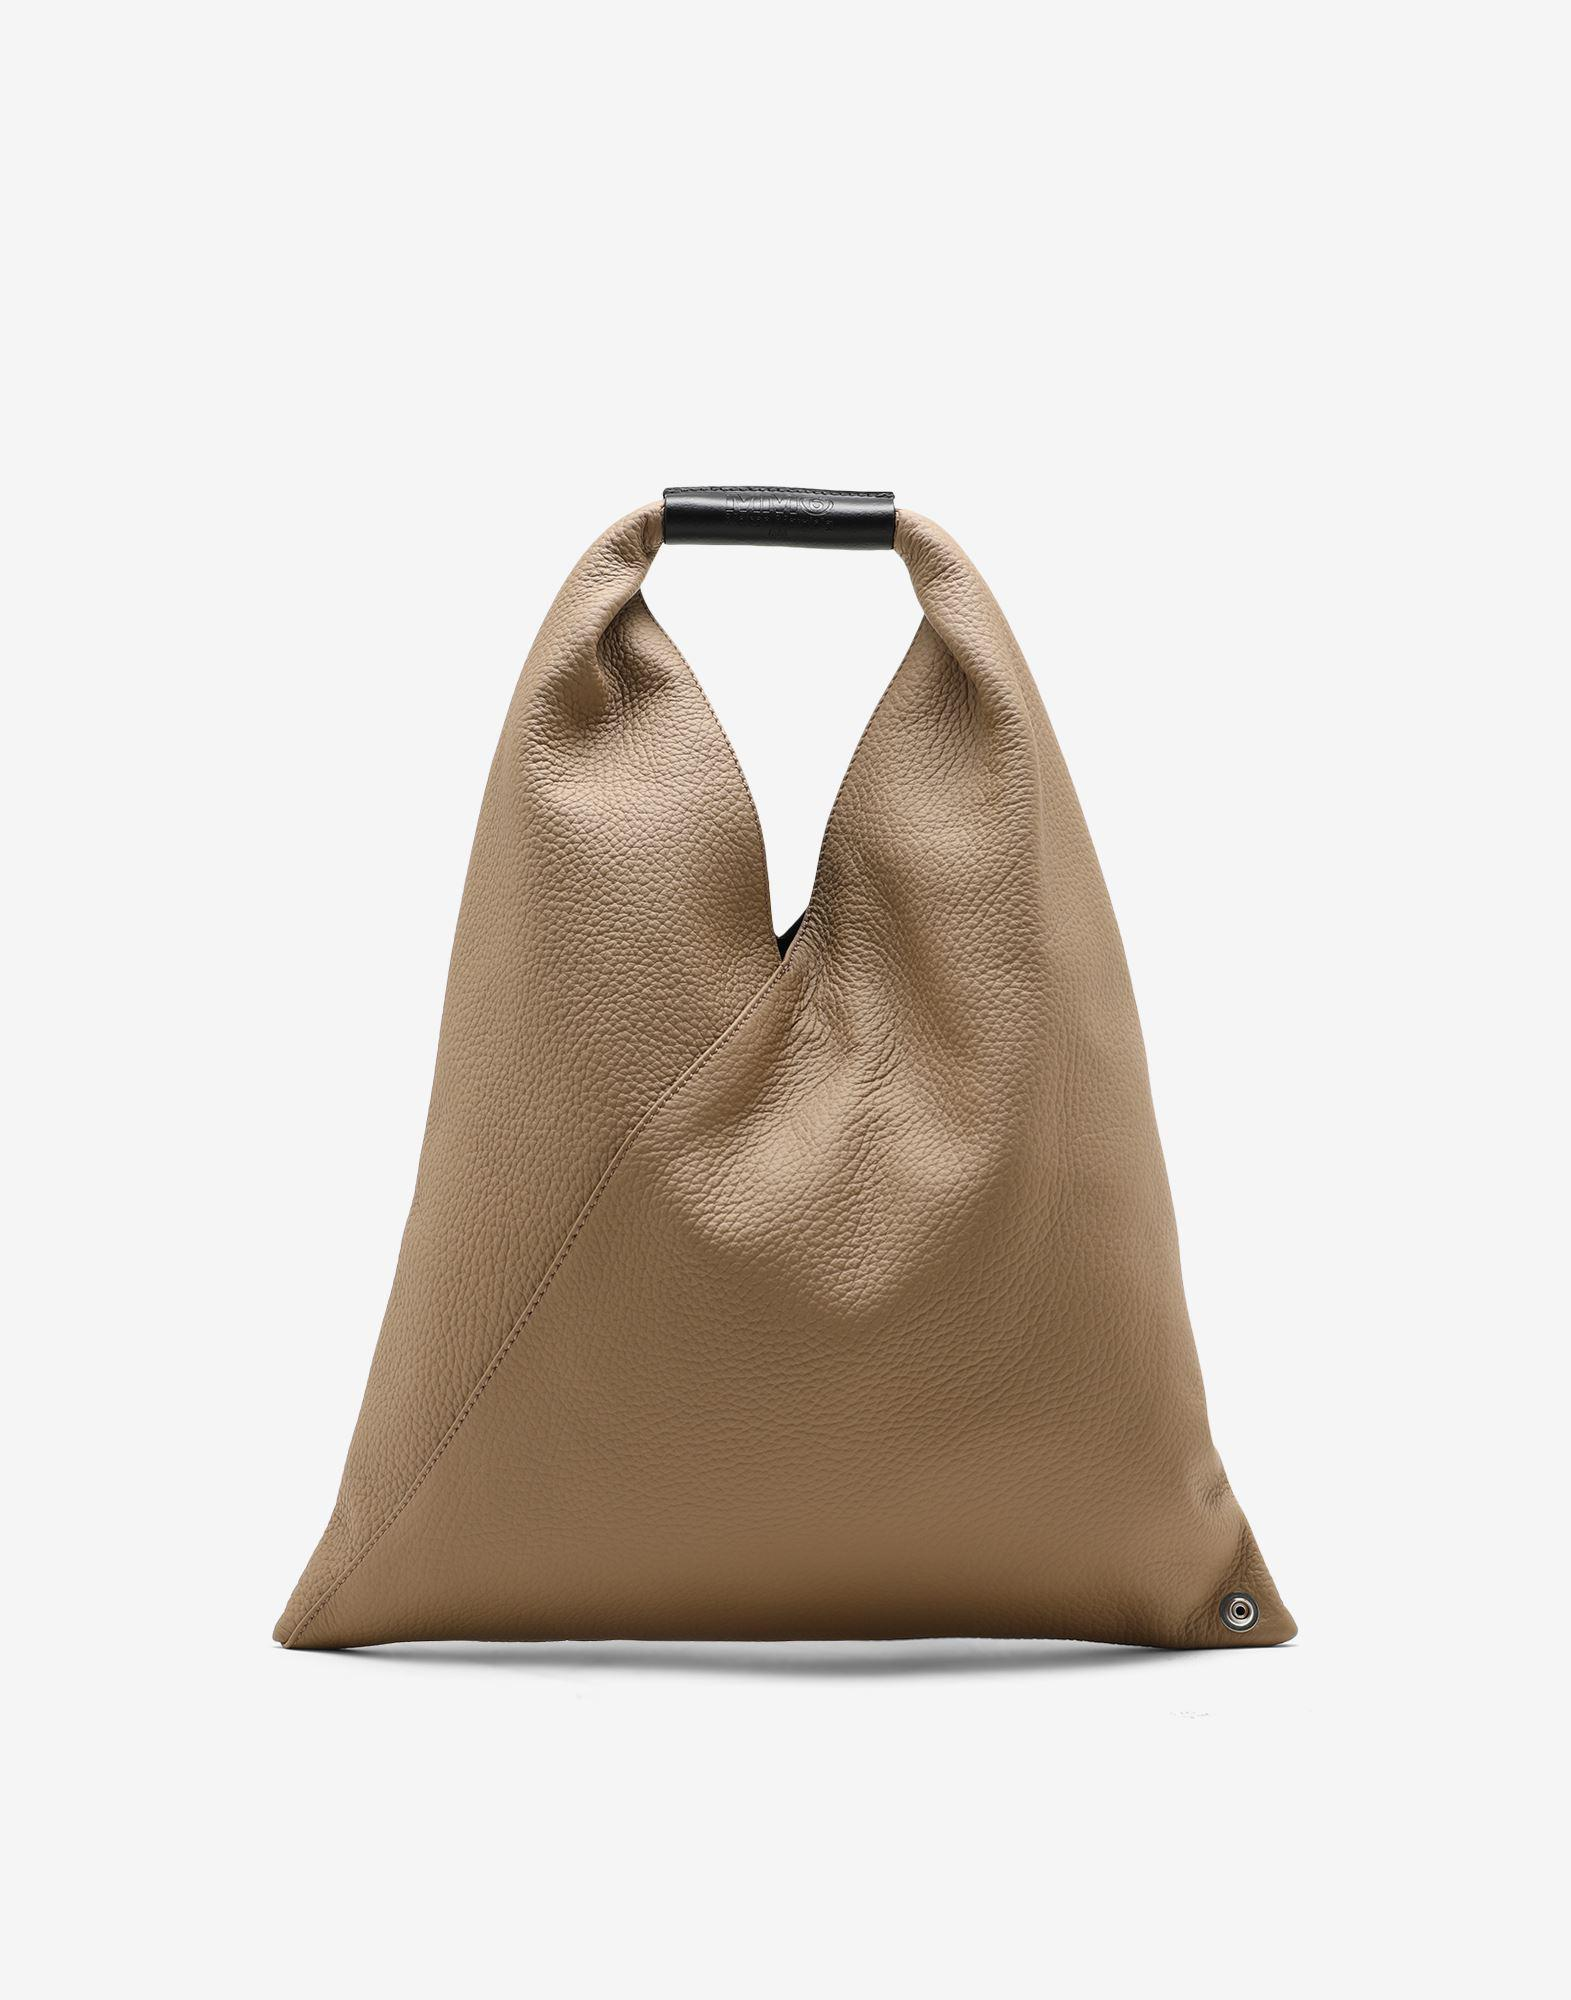 Small Japanese grainy leather bag